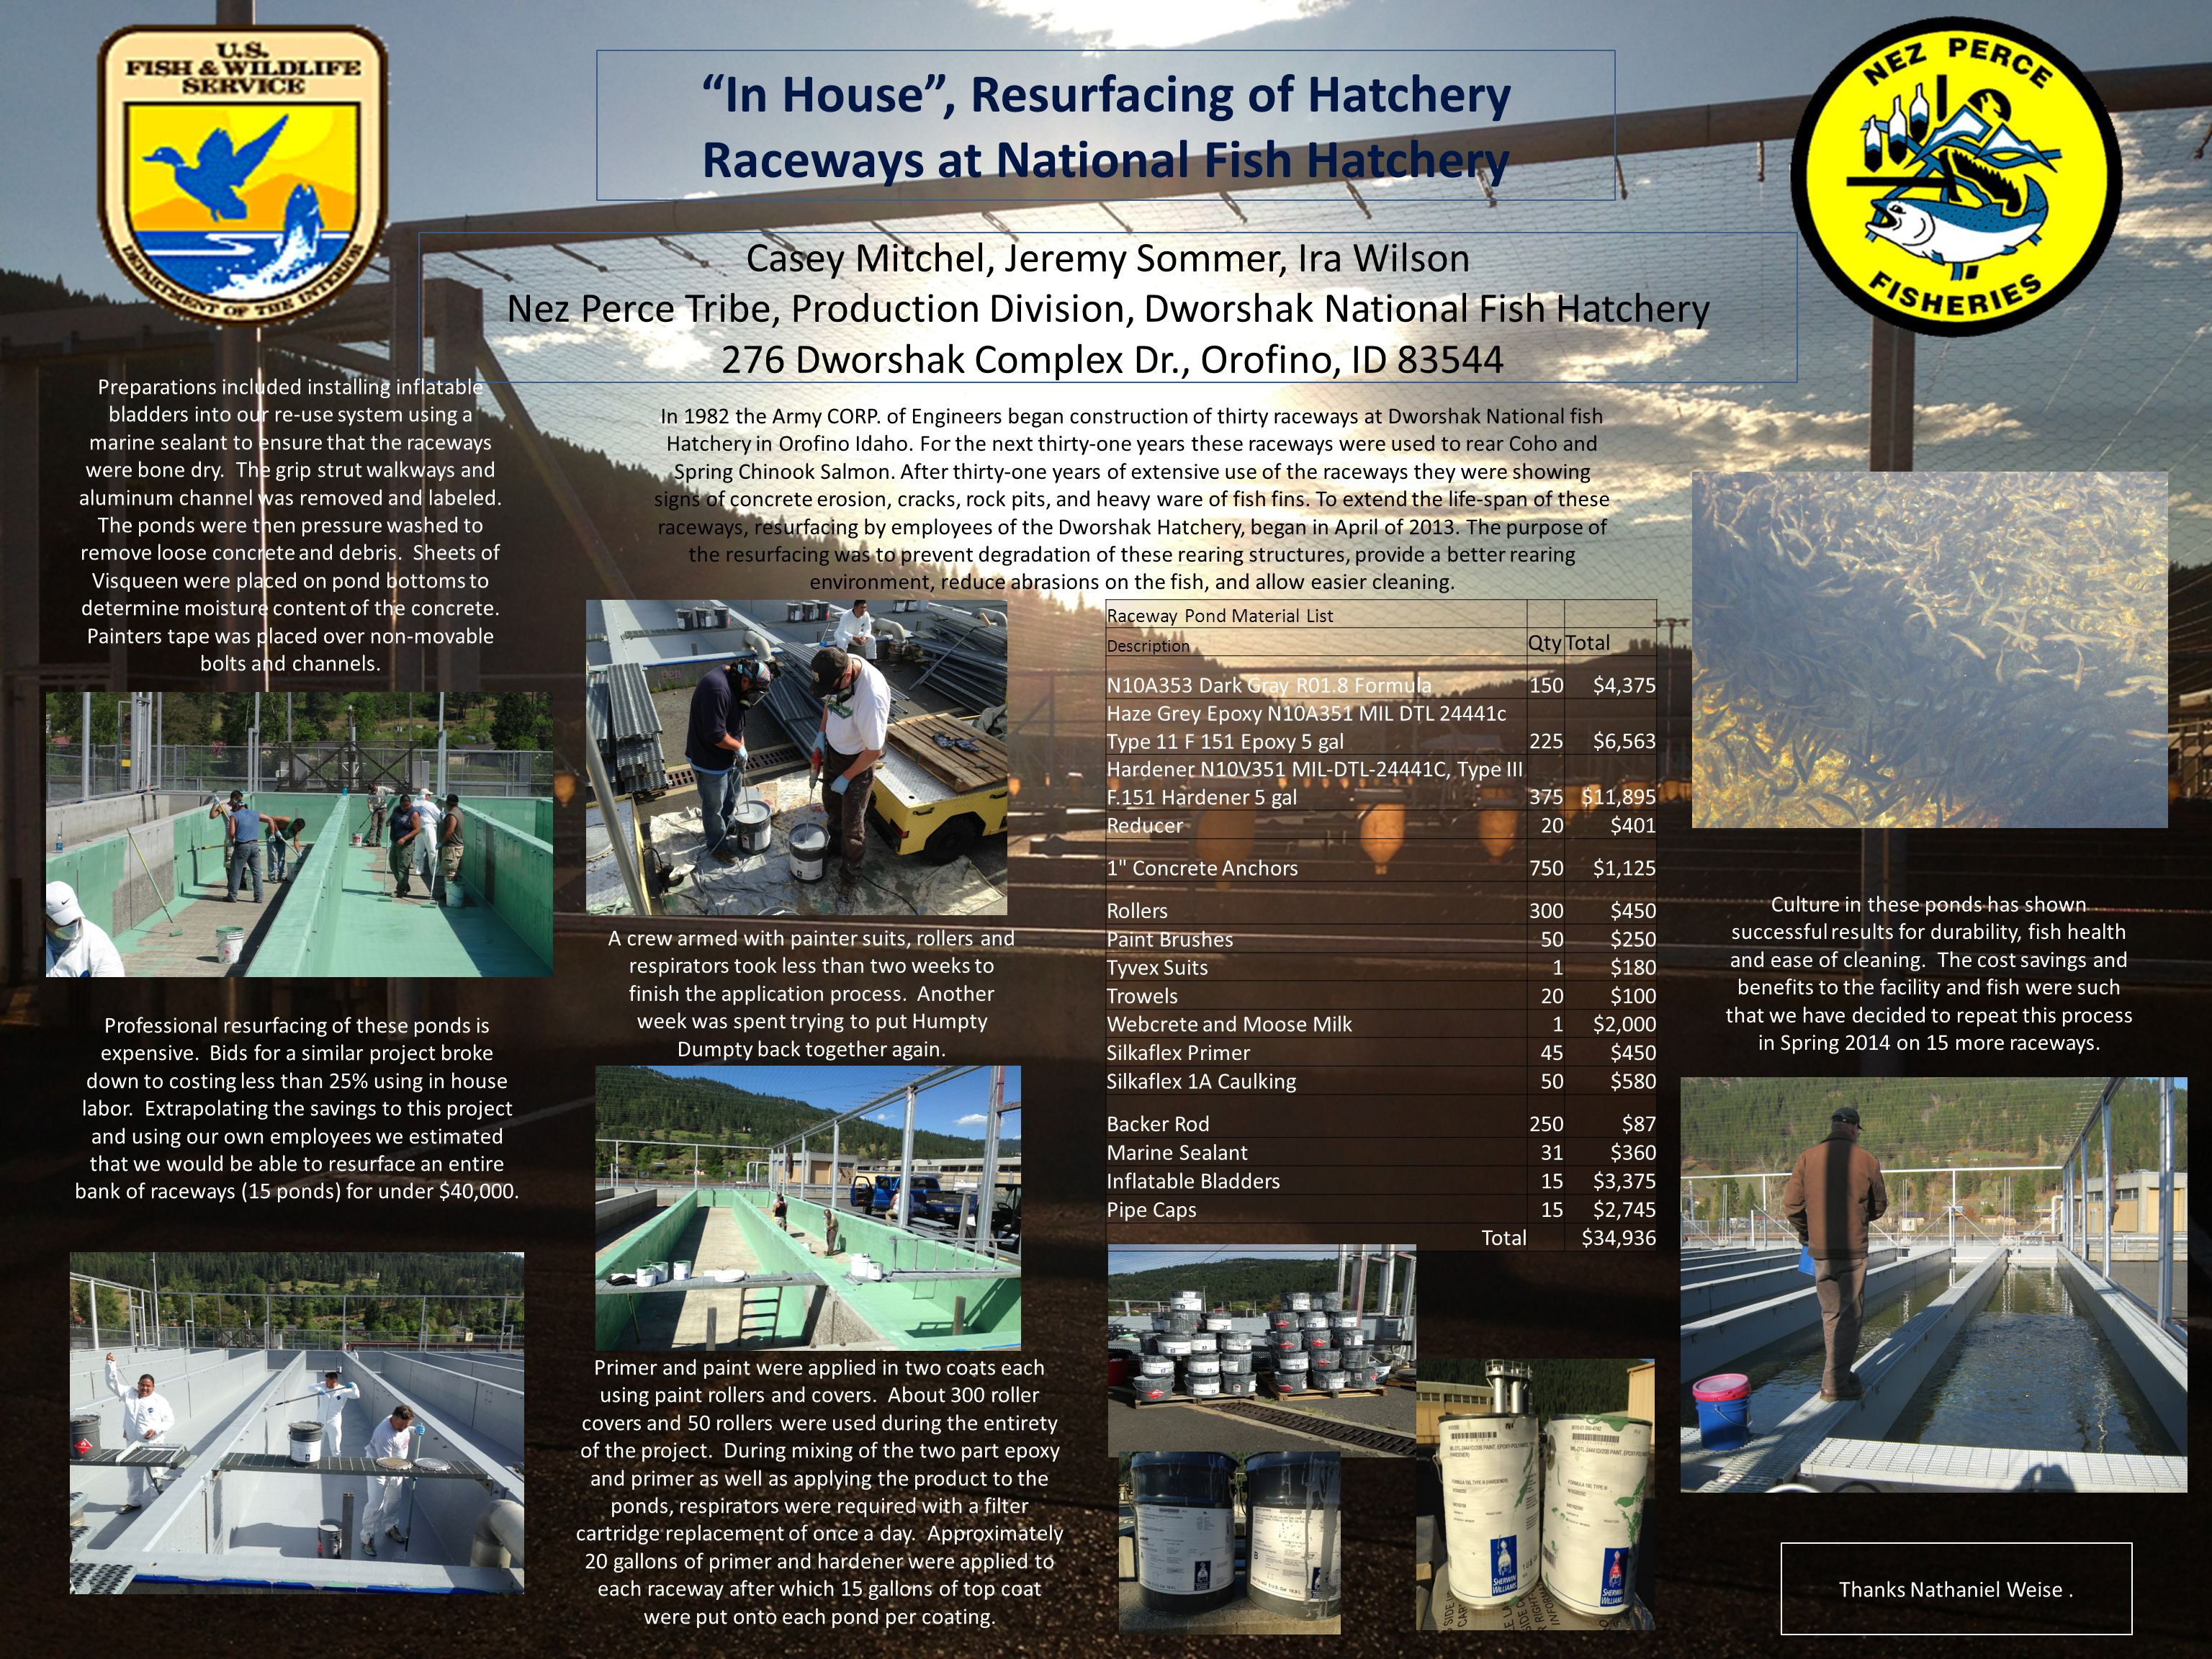 In House , Resurfacing of Hatchery Raceways at National Fish Hatchery Casey Mitchel, Jeremy Sommer, Ira Wilson Nez Perce Tribe, Production Division, Dworshak National Fish Hatchery 276 Dworshak Complex Dr., Orofino, ID 83544 Raceway Pond Material List Description QtyTotal N10A353 Dark Gray R01.8 Formula150$4,375 Haze Grey Epoxy N10A351 MIL DTL 24441c Type 11 F 151 Epoxy 5 gal225$6,563 Hardener N10V351 MIL-DTL-24441C, Type III F.151 Hardener 5 gal375$11,895 Reducer20$401 1 Concrete Anchors750$1,125 Rollers300$450 Paint Brushes50$250 Tyvex Suits1$180 Trowels20$100 Webcrete and Moose Milk1$2,000 Silkaflex Primer45$450 Silkaflex 1A Caulking50$580 Backer Rod250$87 Marine Sealant31$360 Inflatable Bladders15$3,375 Pipe Caps15$2,745 Total$34,936 In 1982 the Army CORP.